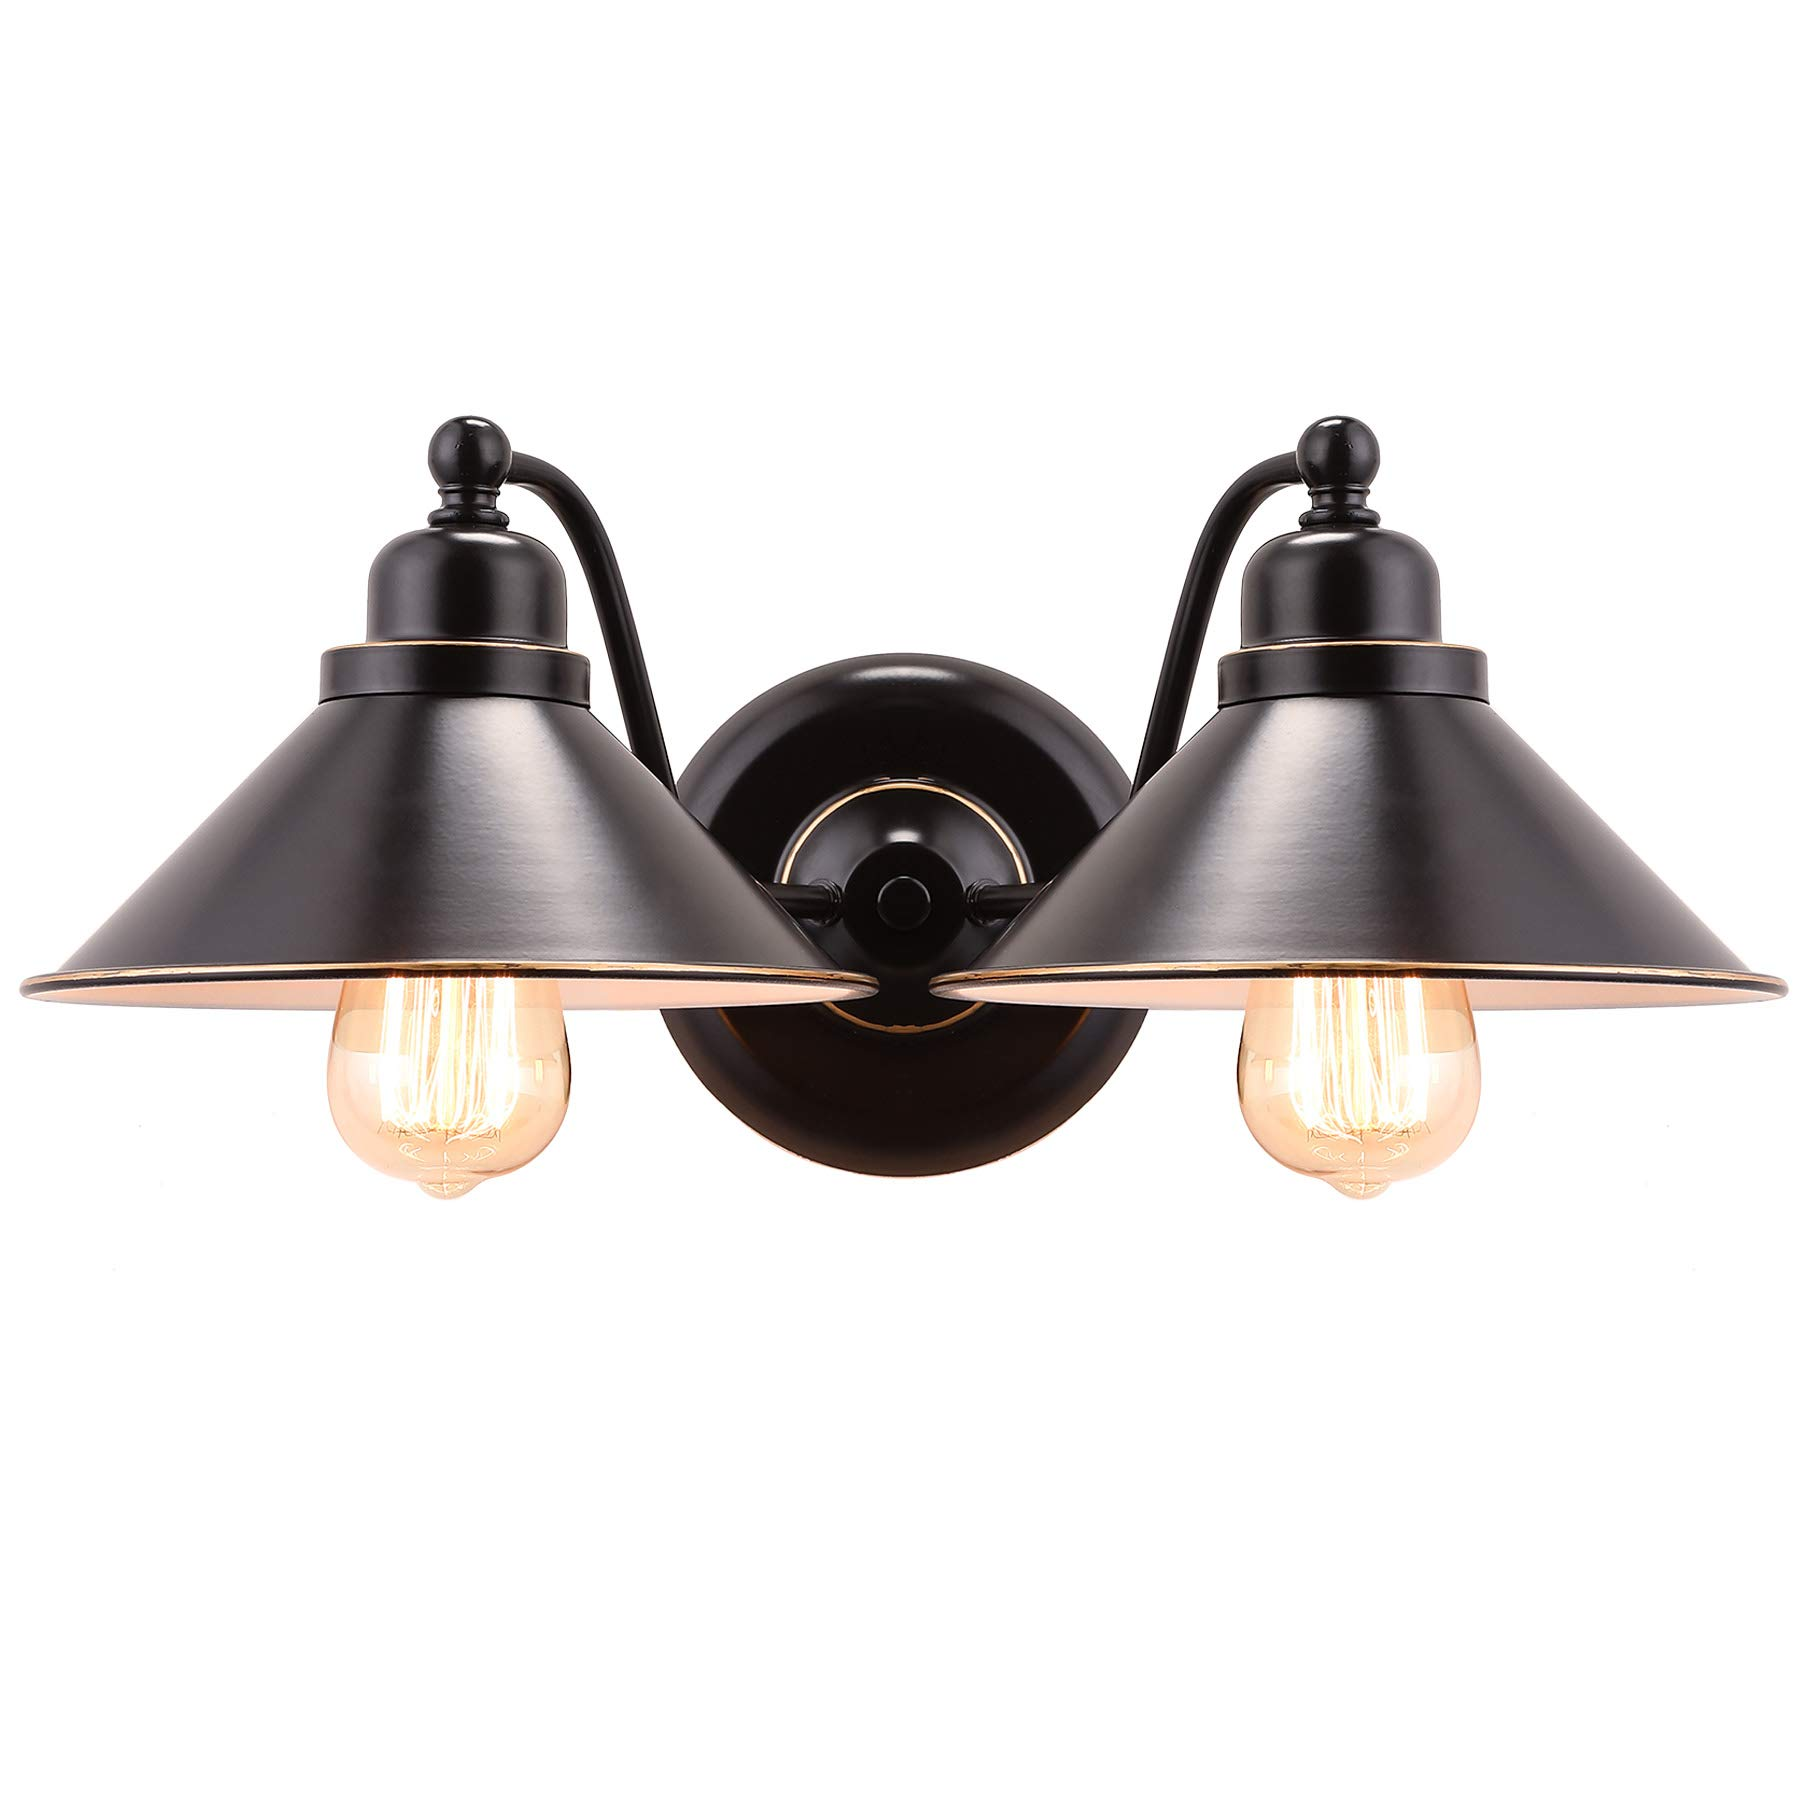 CO-Z 2 Light Wall Sconce in Oil Rubbed Bronze Finish, Vintage Industrial Style Sconces Wall Lighting Fixture, Metal Wall Mount Lamp for Bathroom Bedroom Reading Cafe, ETL. (2 Light) by CO-Z